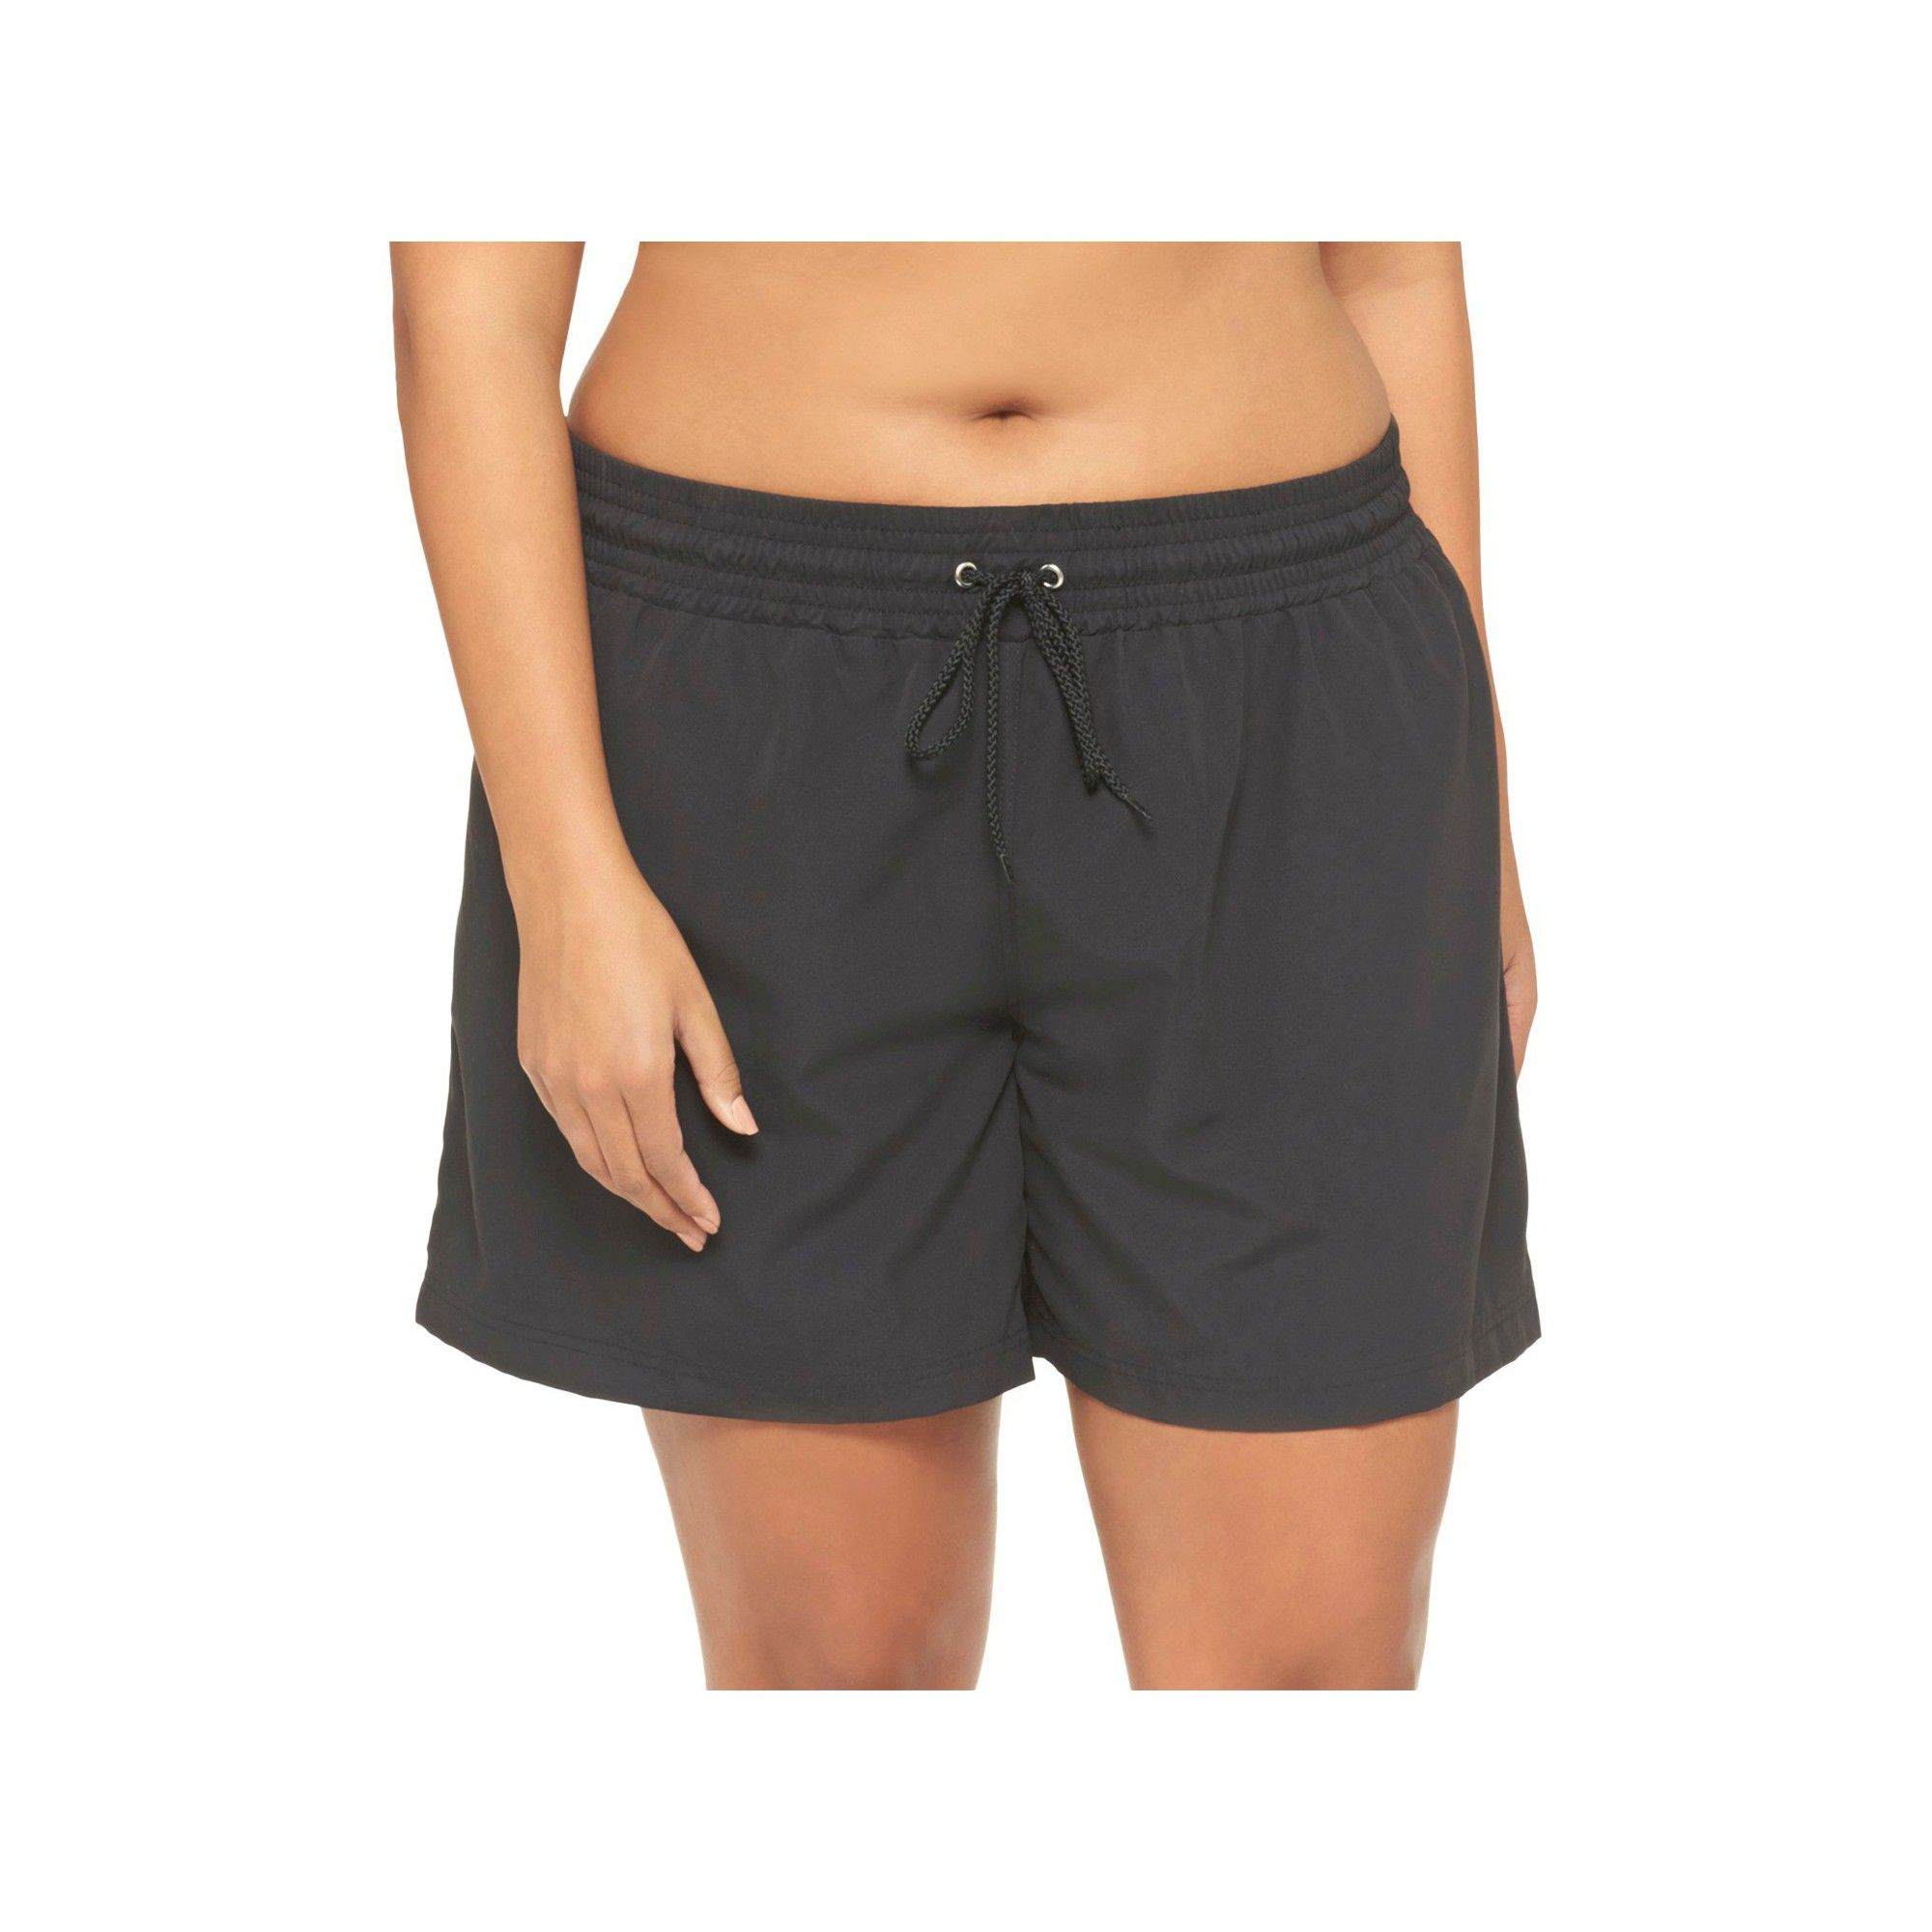 db32a74da2834 Women's Plus Size Swim Board Shorts - Ava & Viv - Black 20W/22W ...